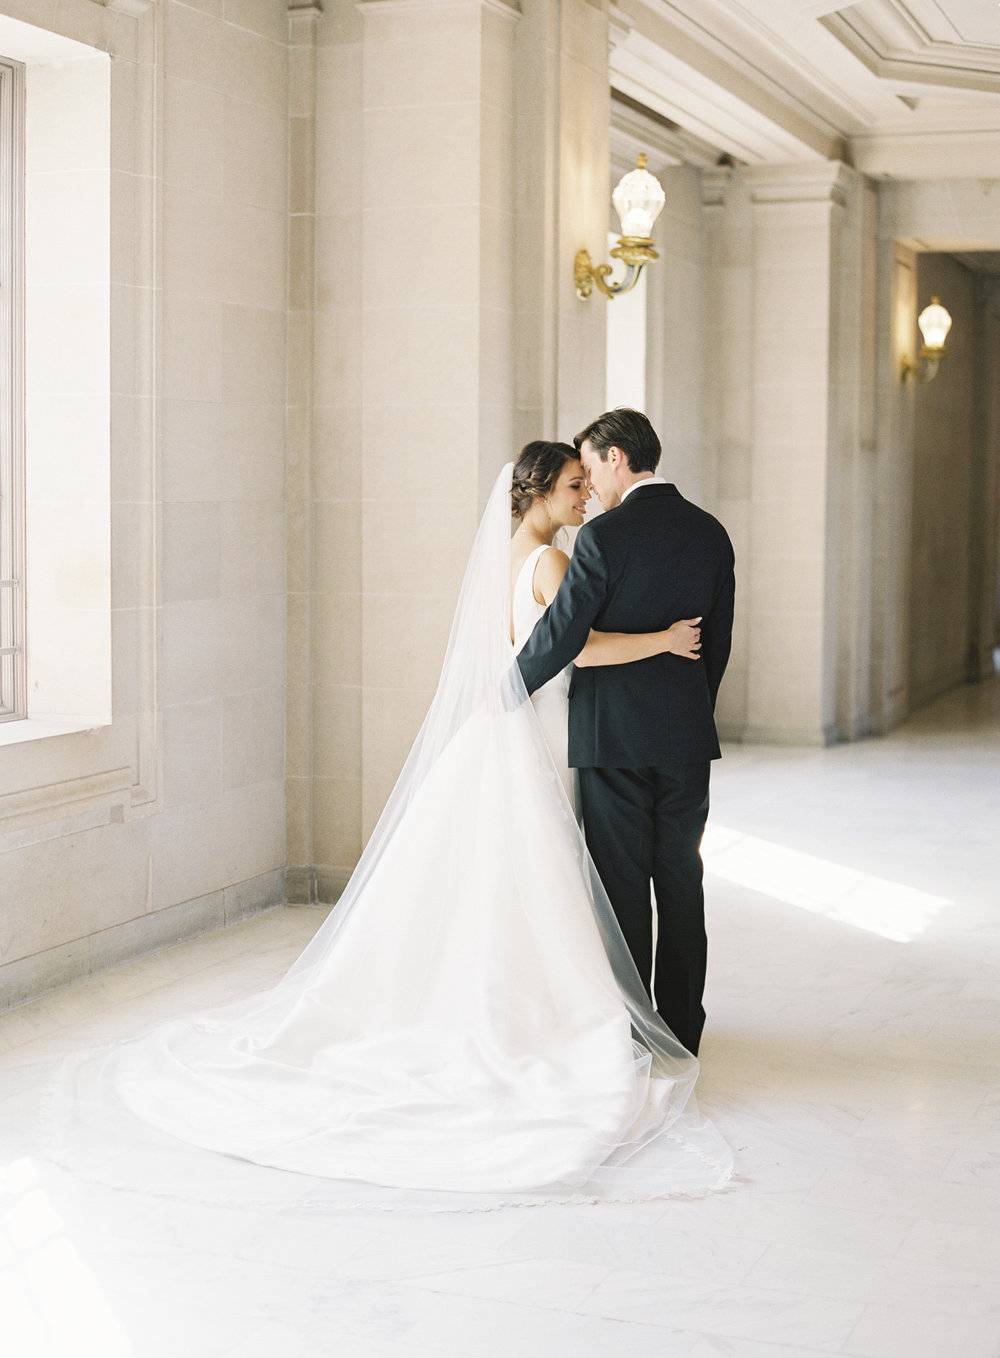 Meghan Mehan Photography - California Wedding Photographer | San Francisco City Hall Wedding 016.jpg